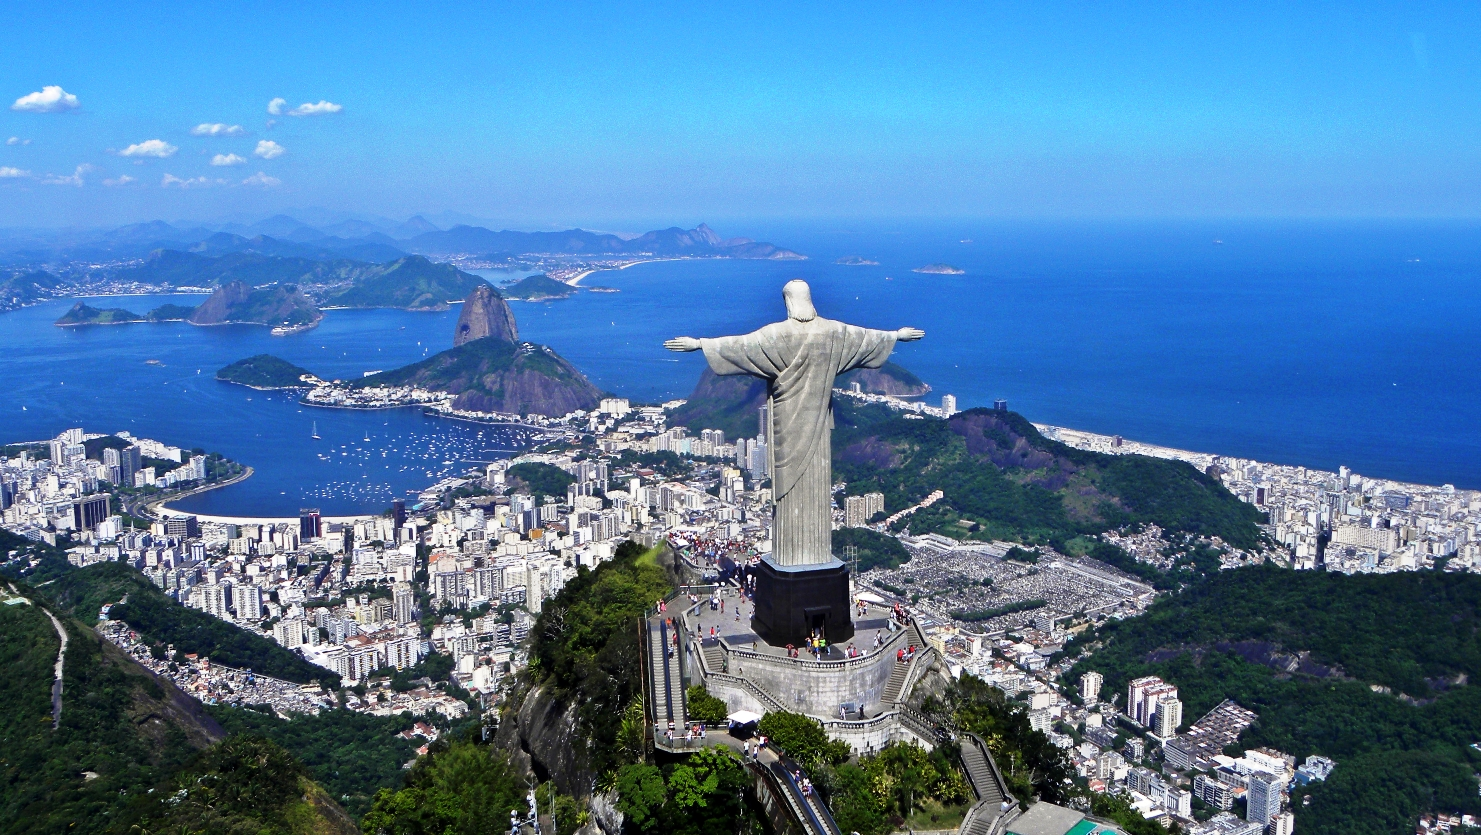 024 Christ_on_Corcovado_mountain